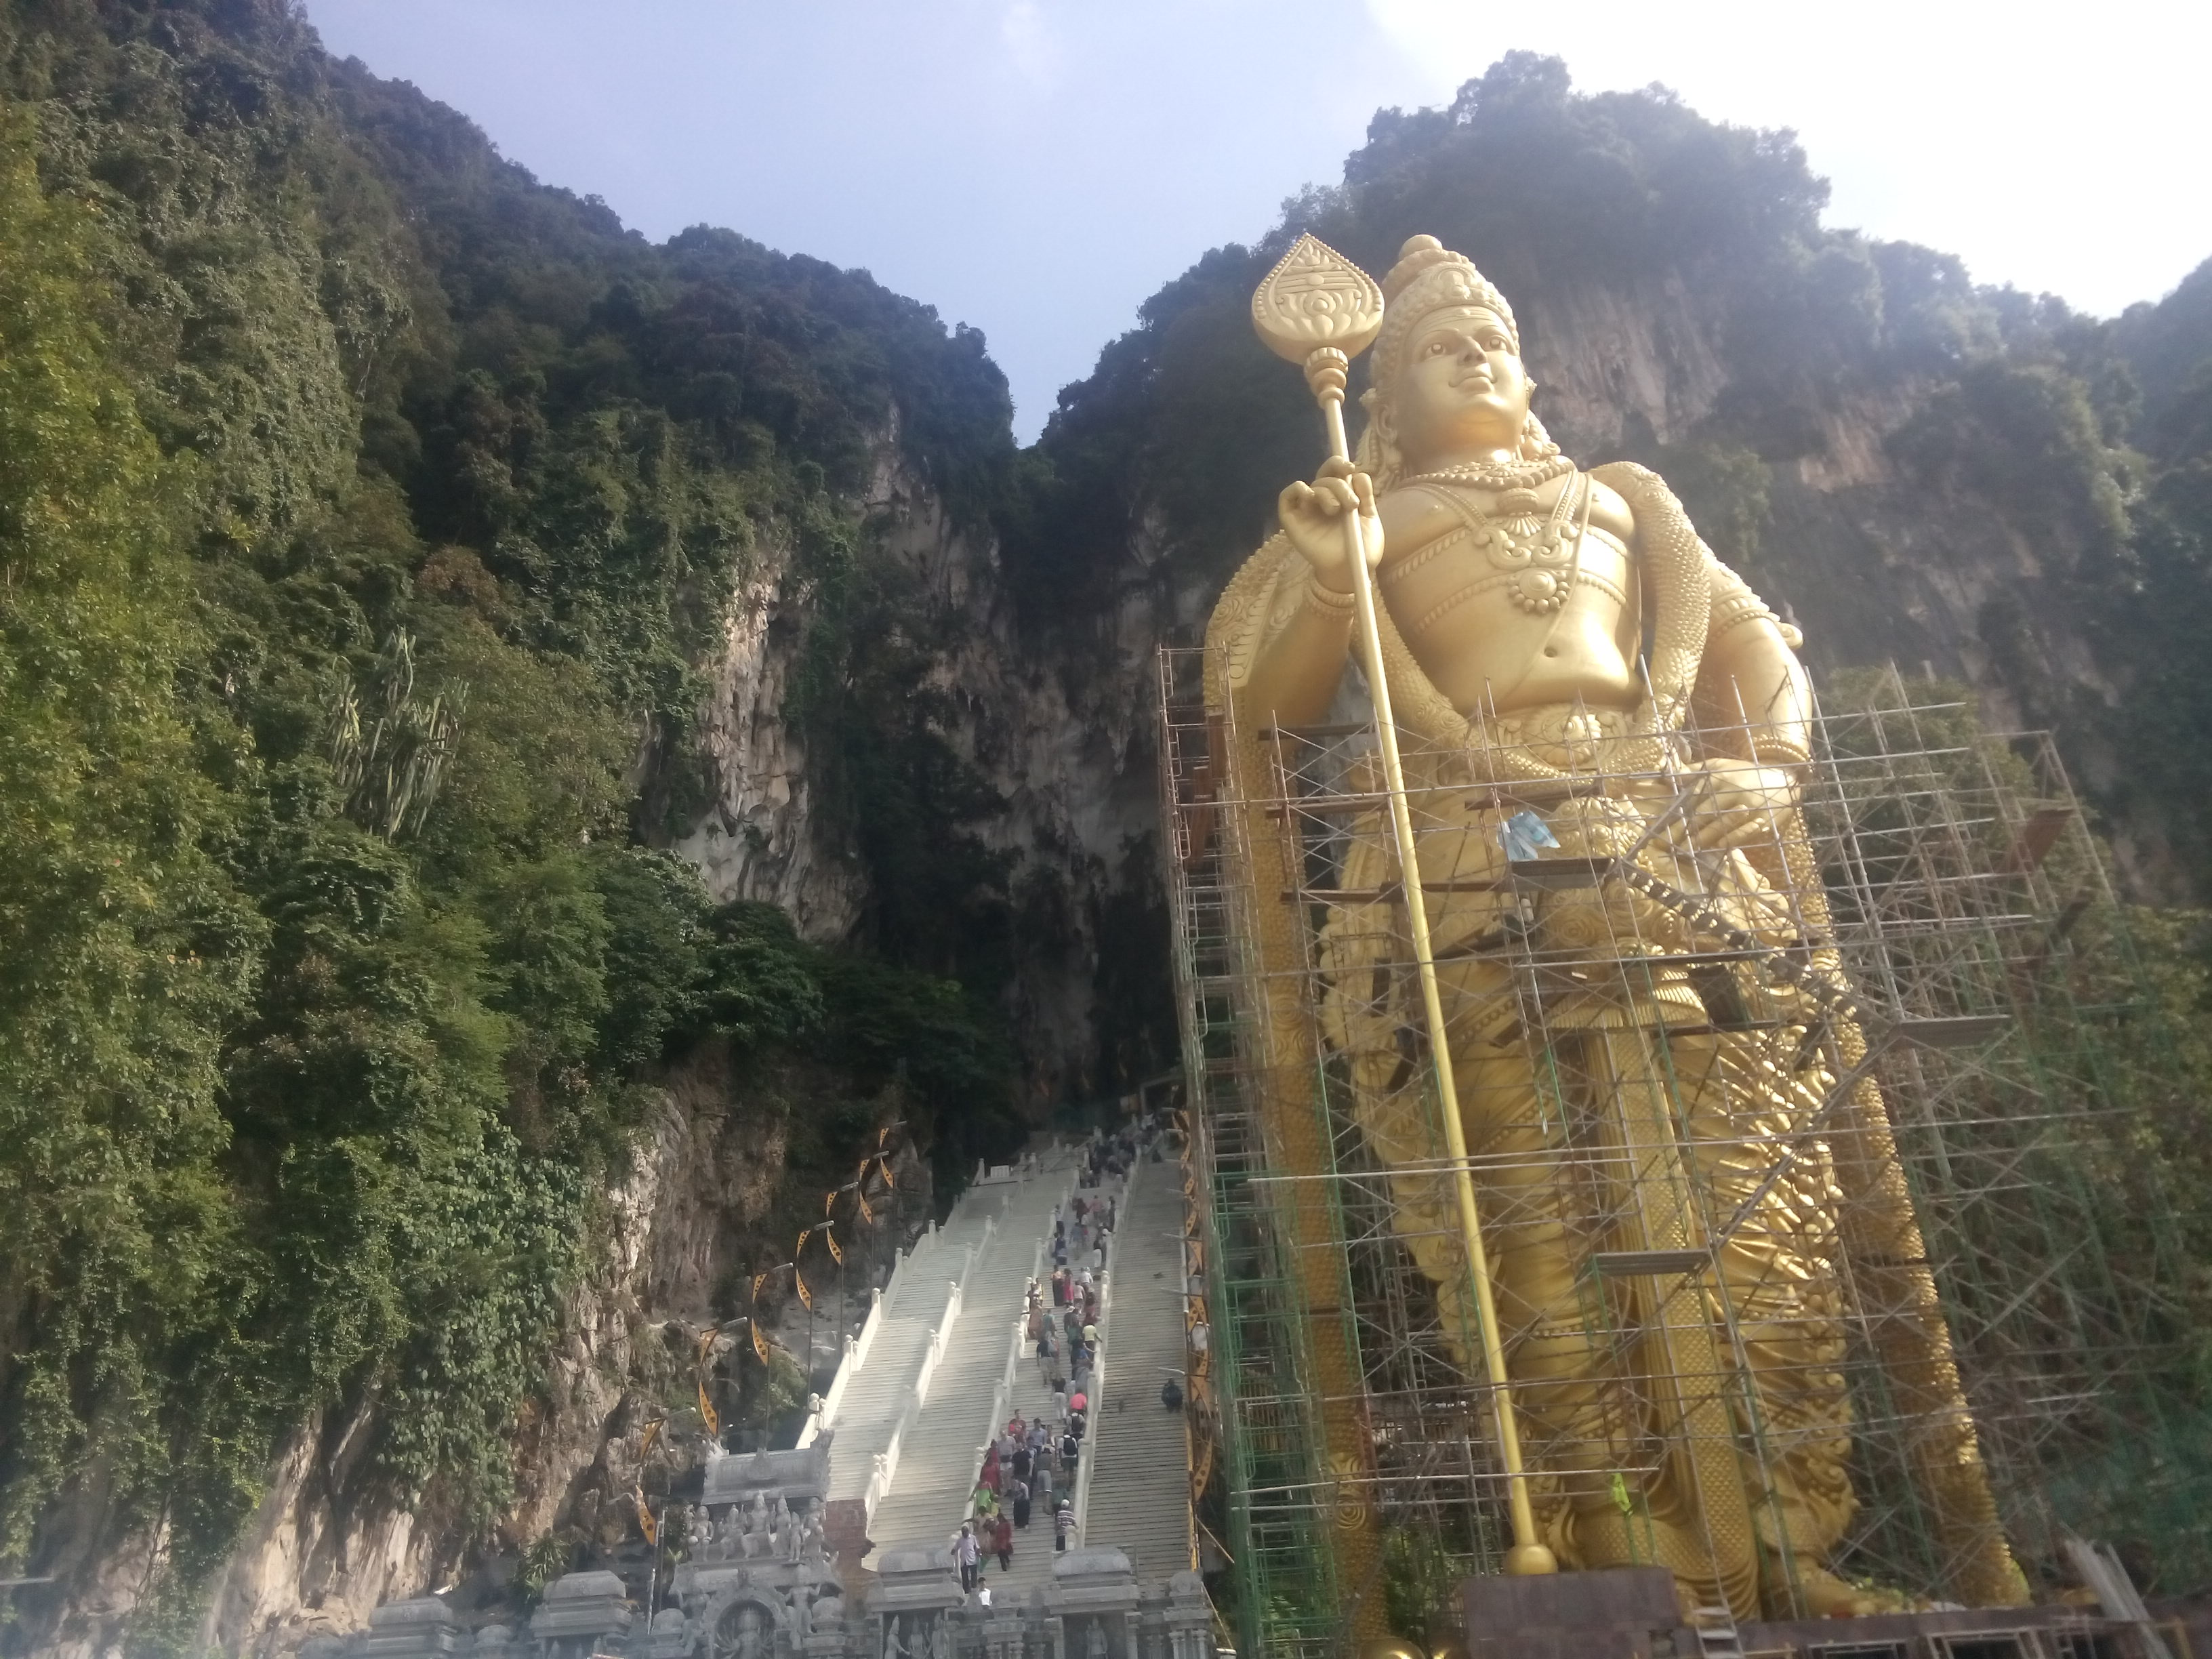 Steps and entrance to Batu Caves